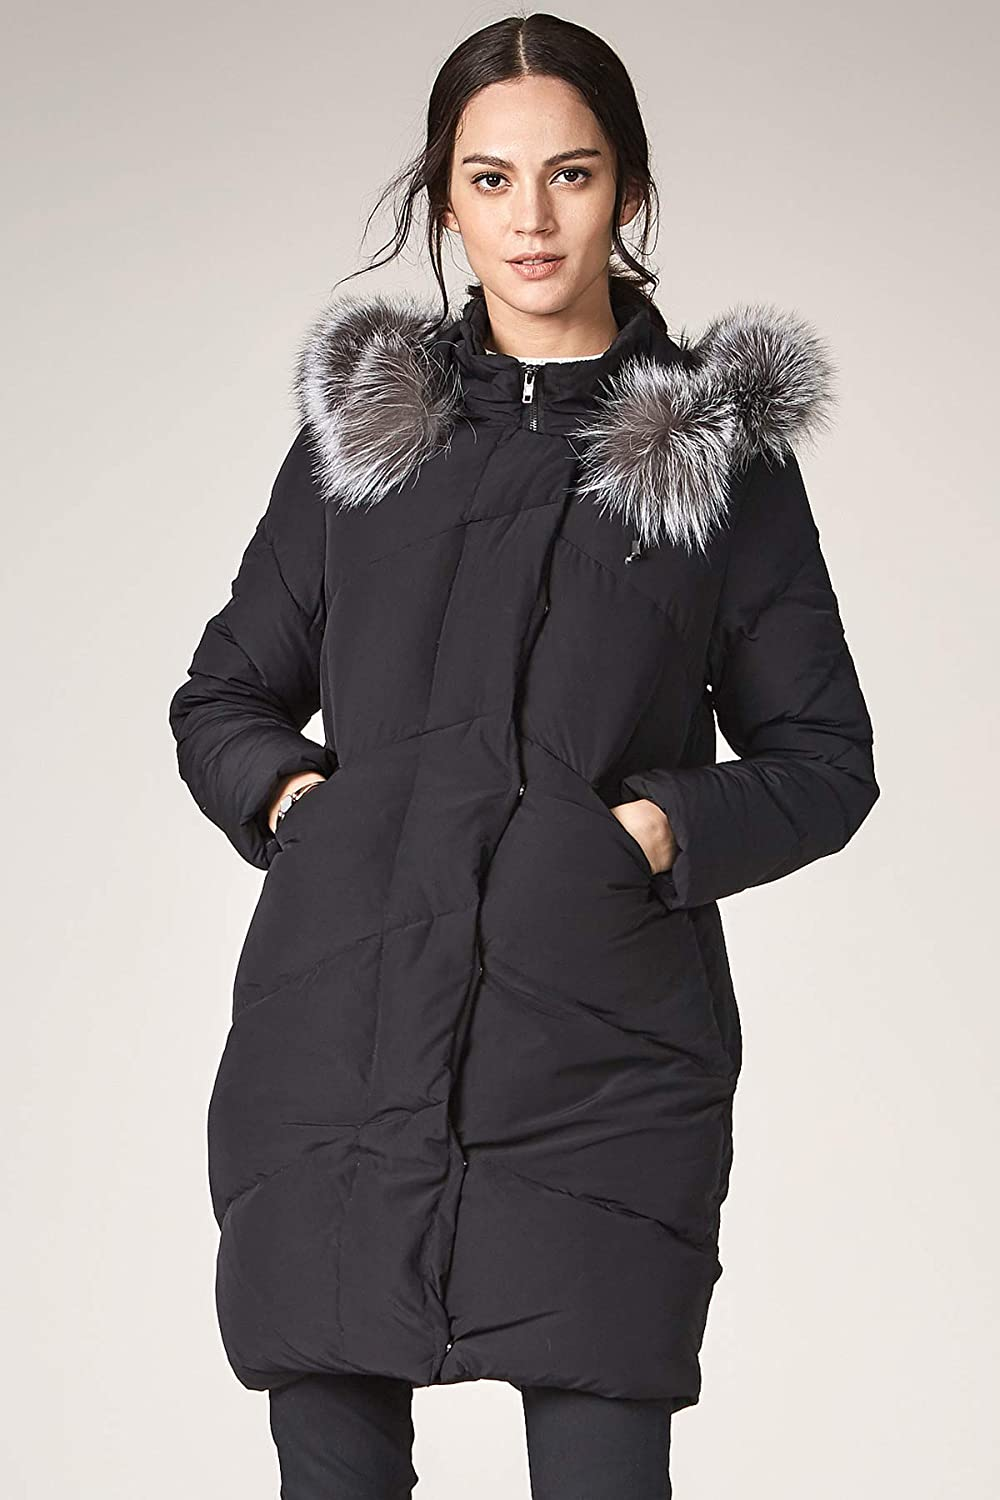 b3aecf7960c Amazon.com: Escalier Women's Down Jacket with Fox Fur Hooded Winter Parka  Coat: Clothing